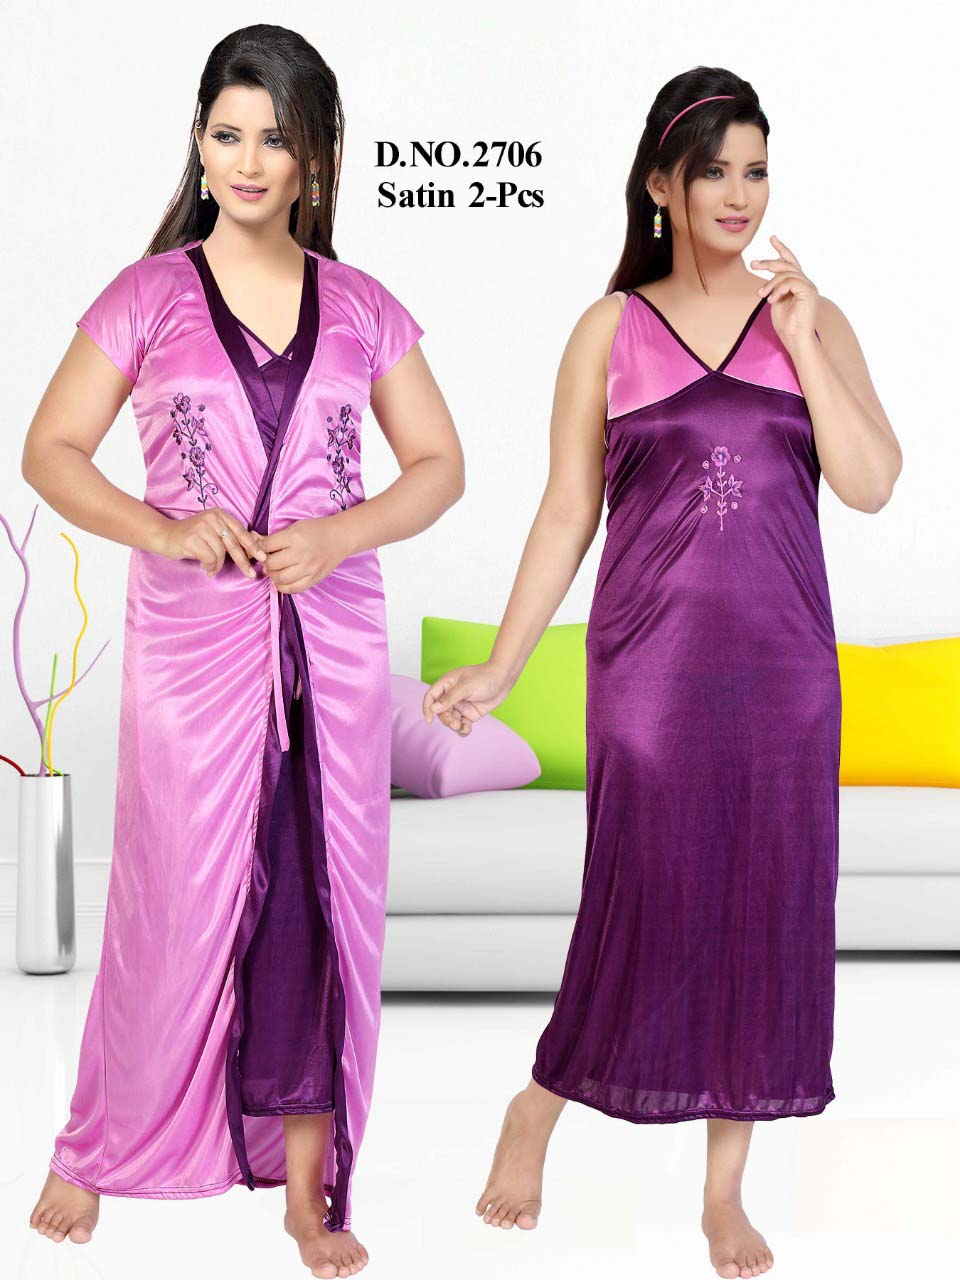 SATIN TWO PIECE NIGTHY-PURPLE-KC JUNE 2706